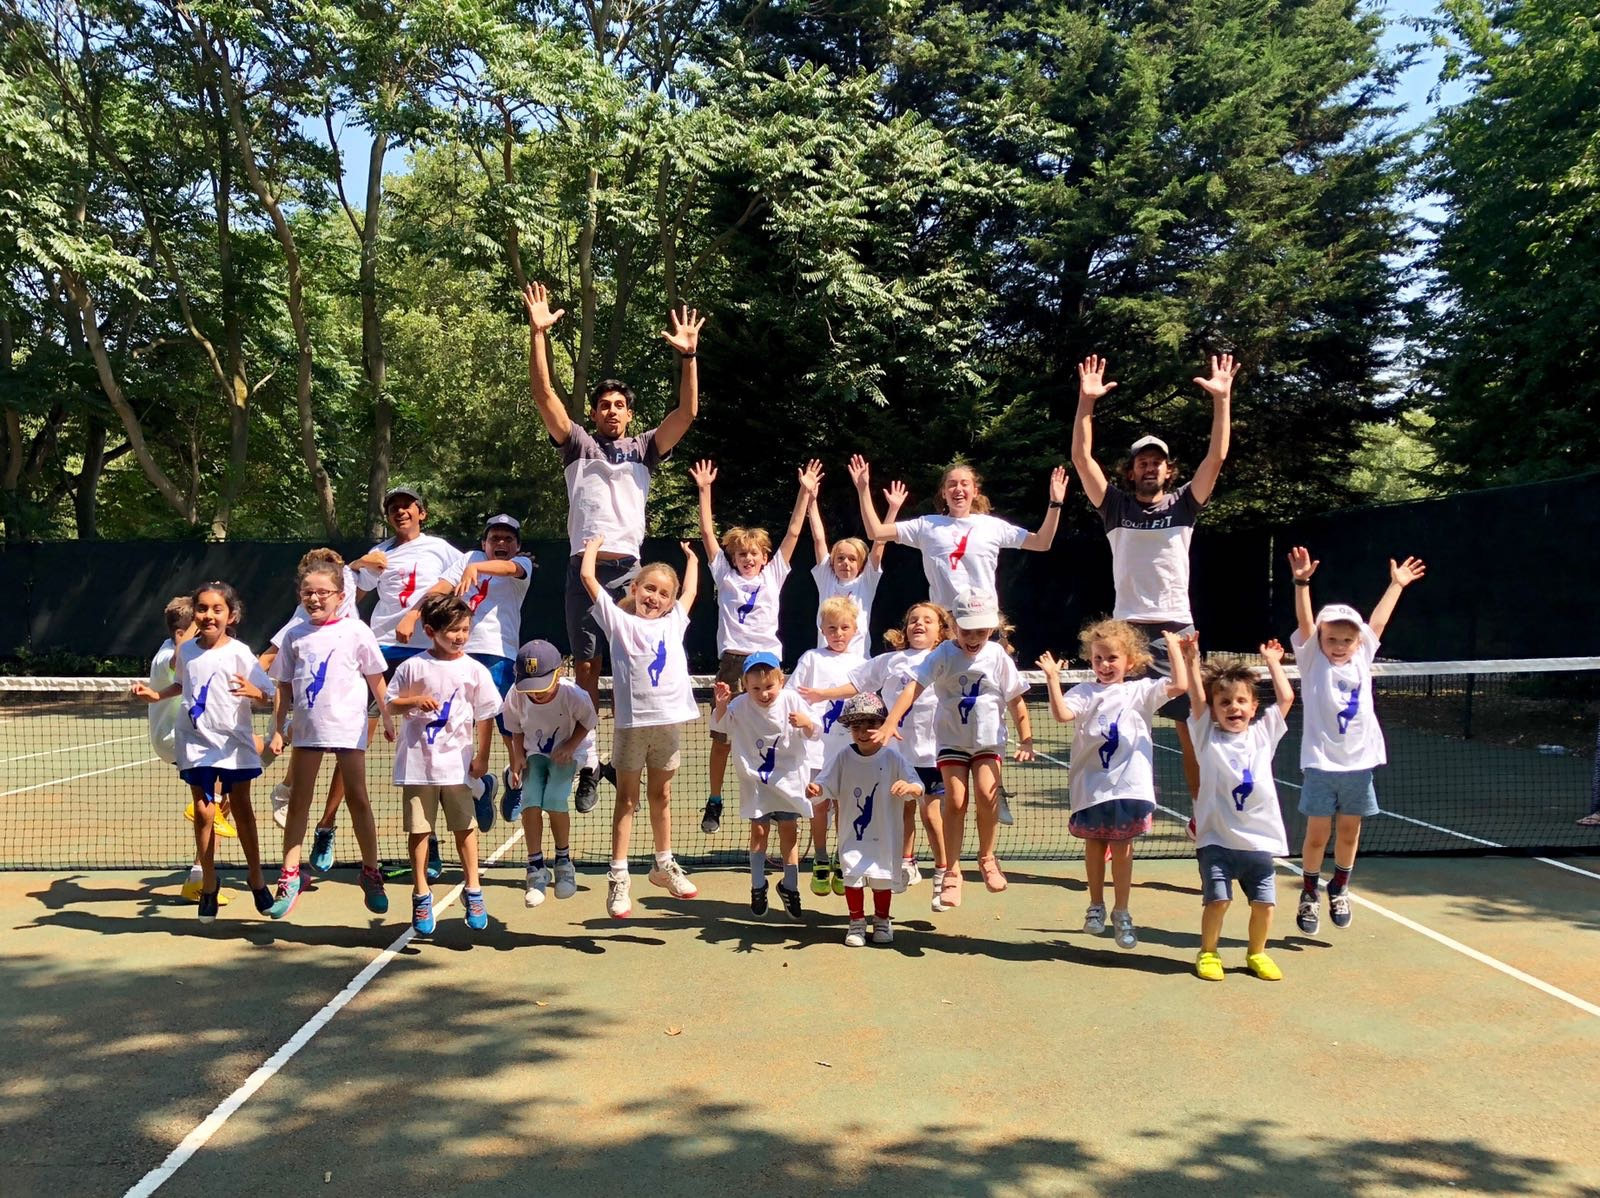 - We have classes for all ages and standards throughout the week.All squads are run by lta licensed coaches, dbs checked and have vast experience coaching all levels.All squads are run as a 6 or 7 week course following the school term time. please click on 'book' button to find out prices and more information.